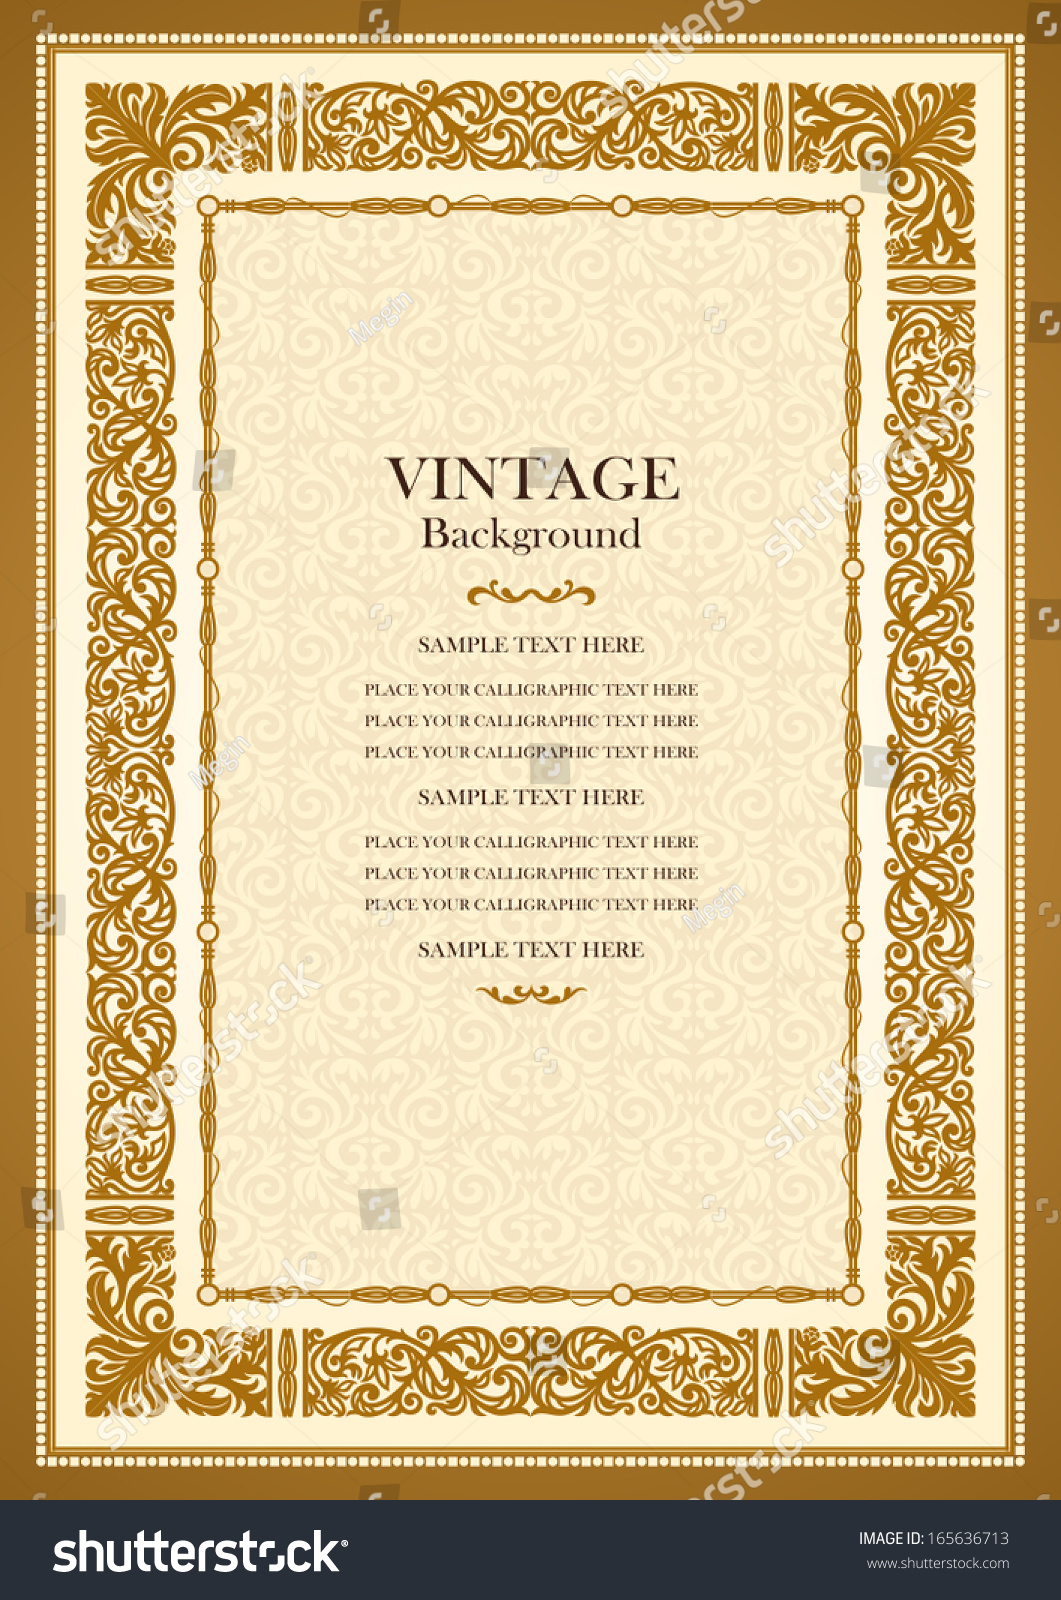 Beautiful Background For Book Cover : Vintage gold background antique style frame stock vector